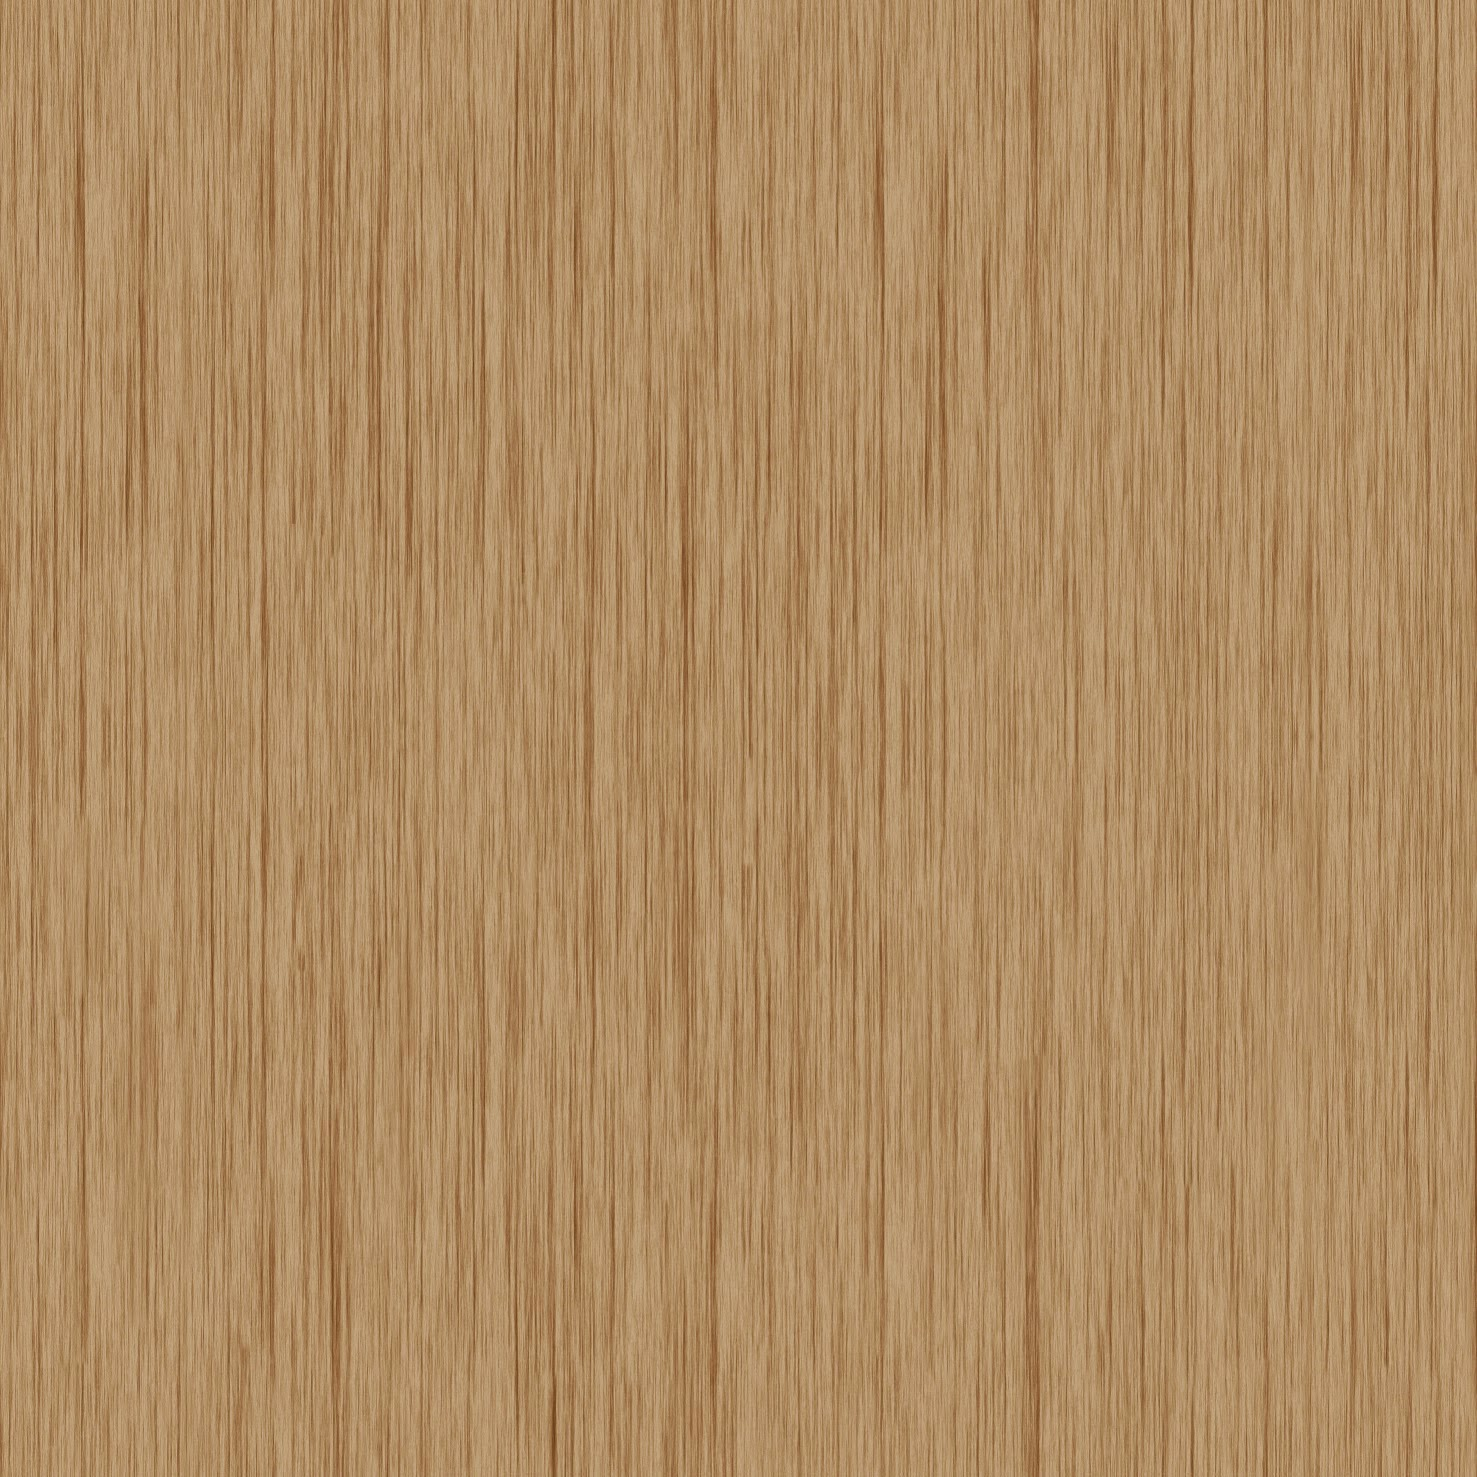 Texture rovere for Texture rovere